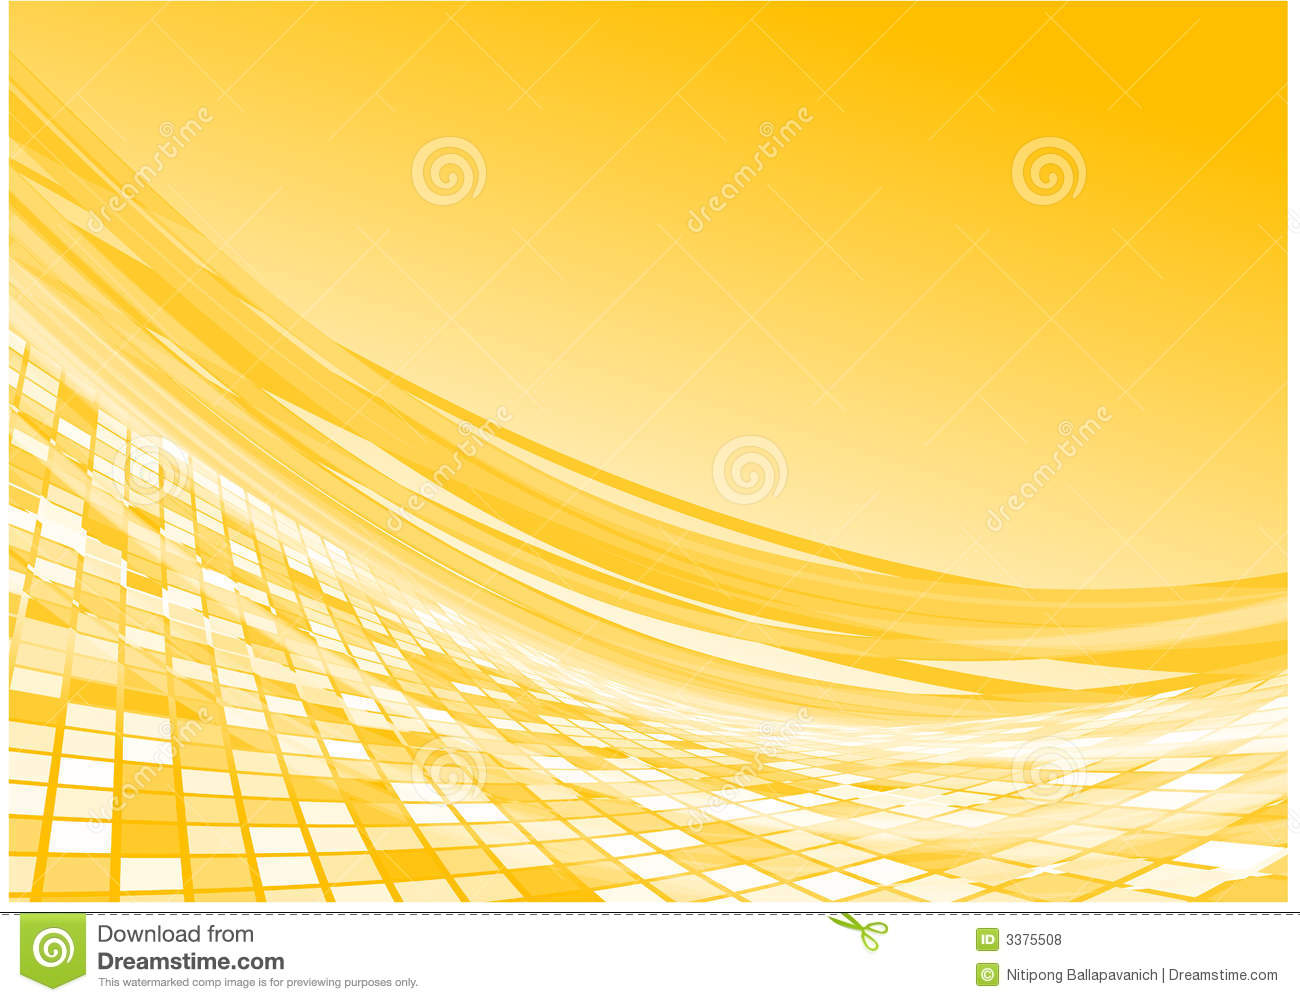 Free Download Wallpaper 3d Graphic Yellow 3d Flow Vector Stock Vector Illustration Of Effect